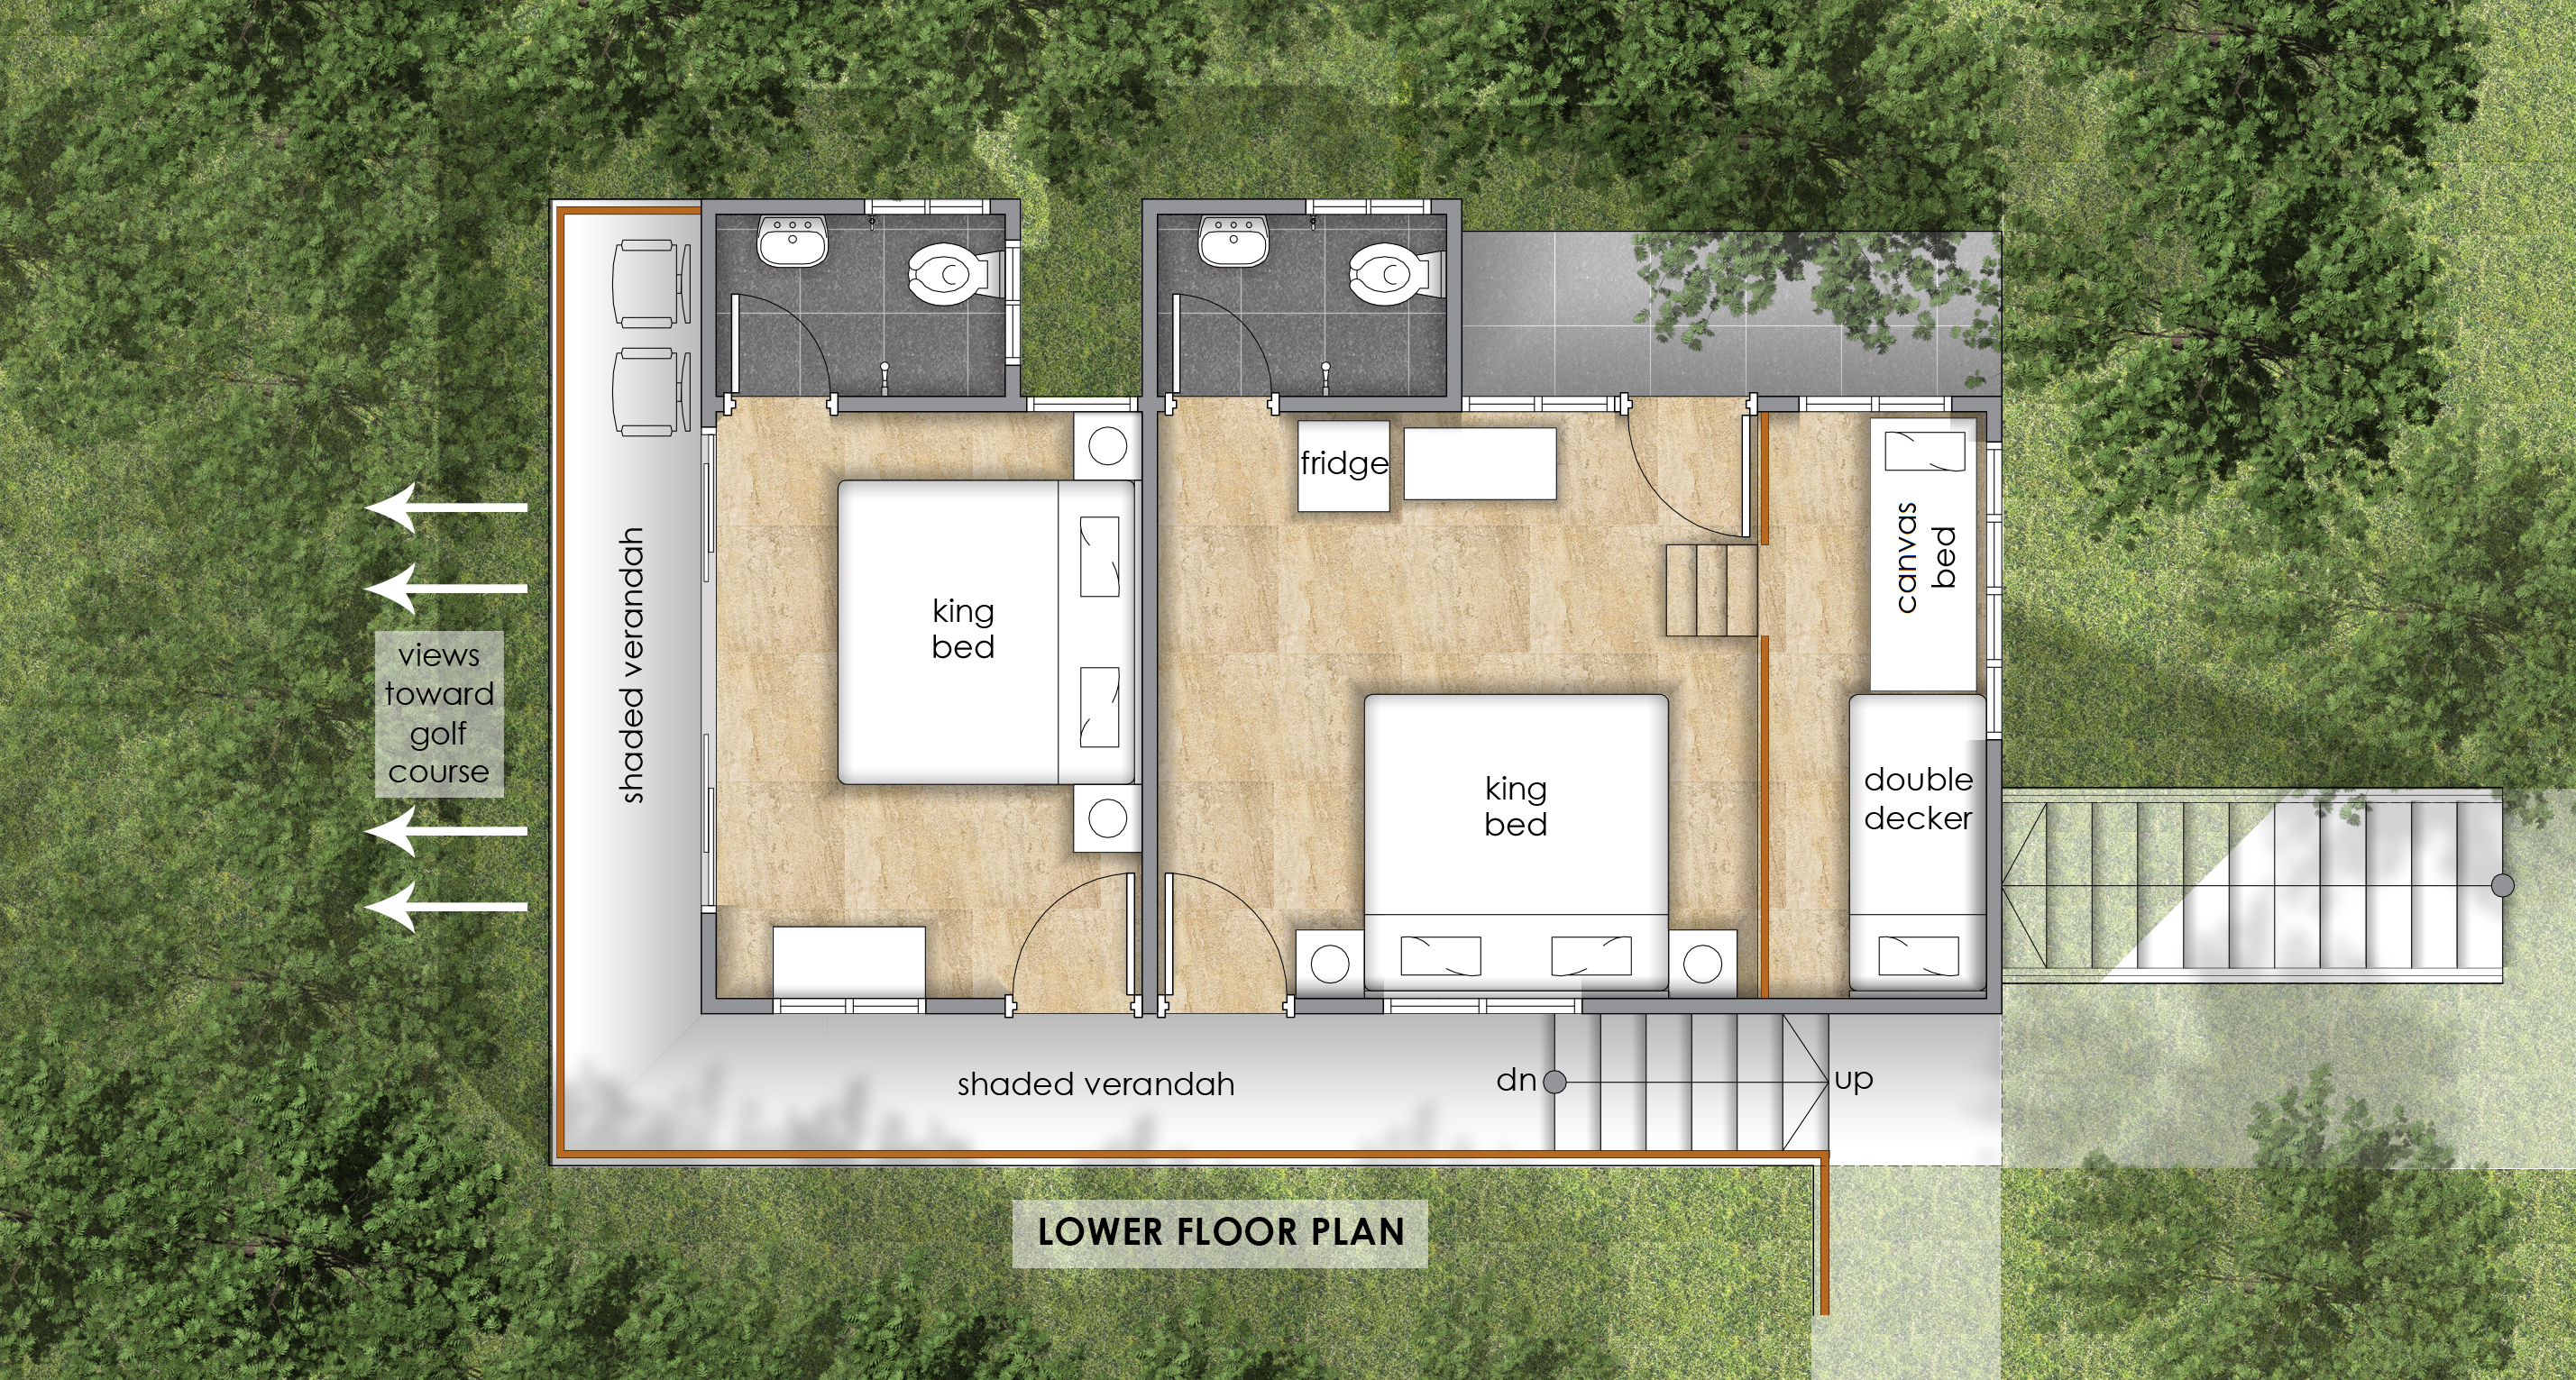 Golf-Facing Villa Lower Floor Plan